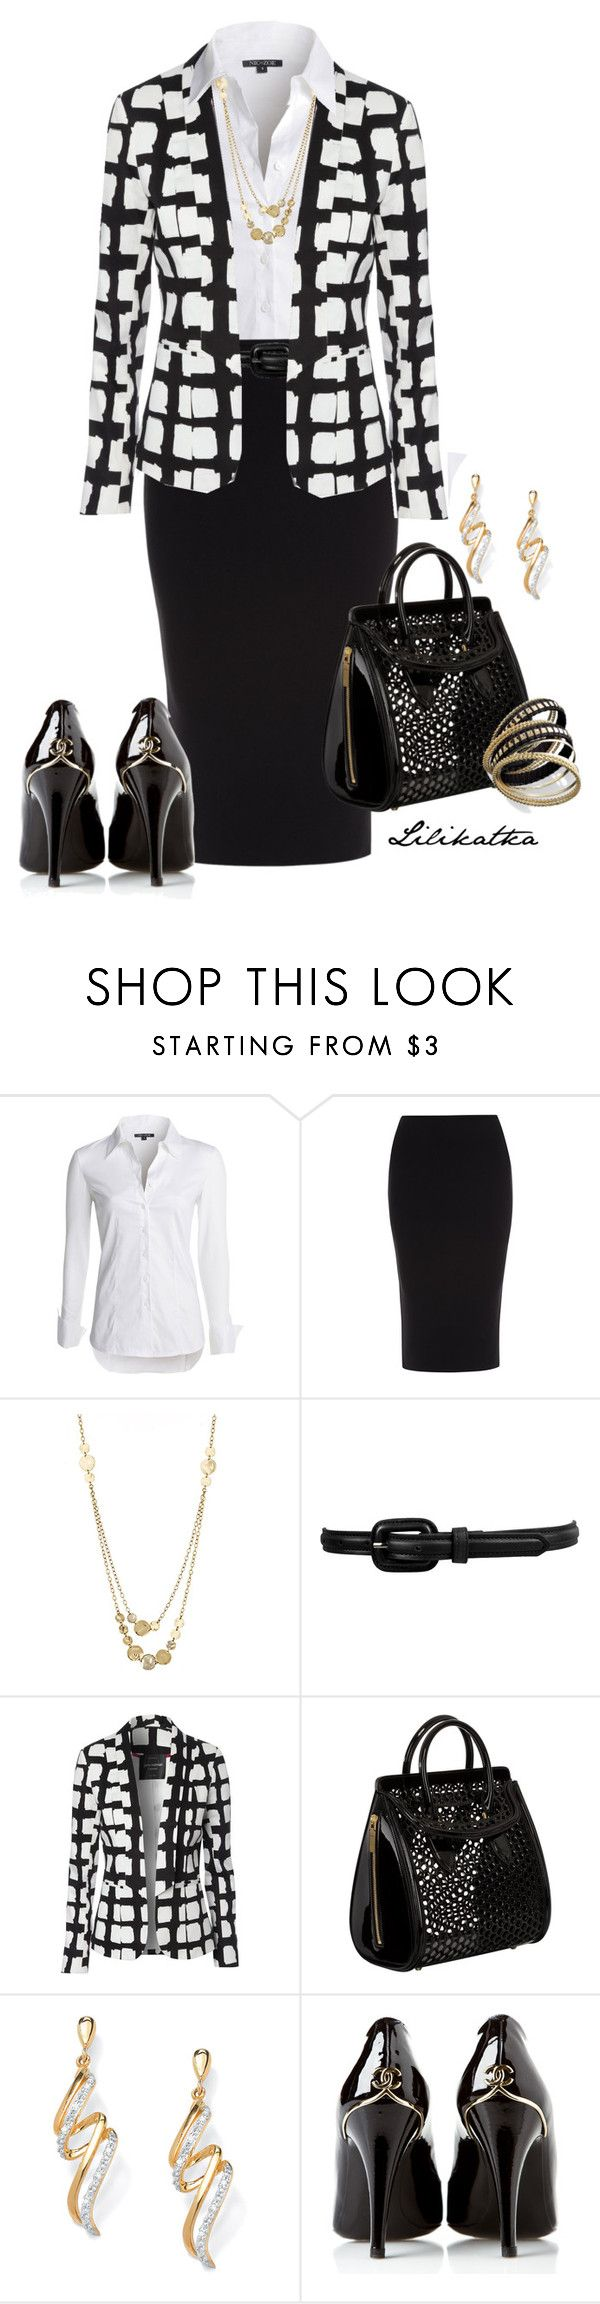 """""""Pivonka#1168"""" by lilikatka ❤ liked on Polyvore featuring NIC+ZOE, Roland Mouret, Lisa Stewart, Forever 21, Jane Norman, Alexander McQueen, Palm Beach Jewelry, Chanel and Bar III"""